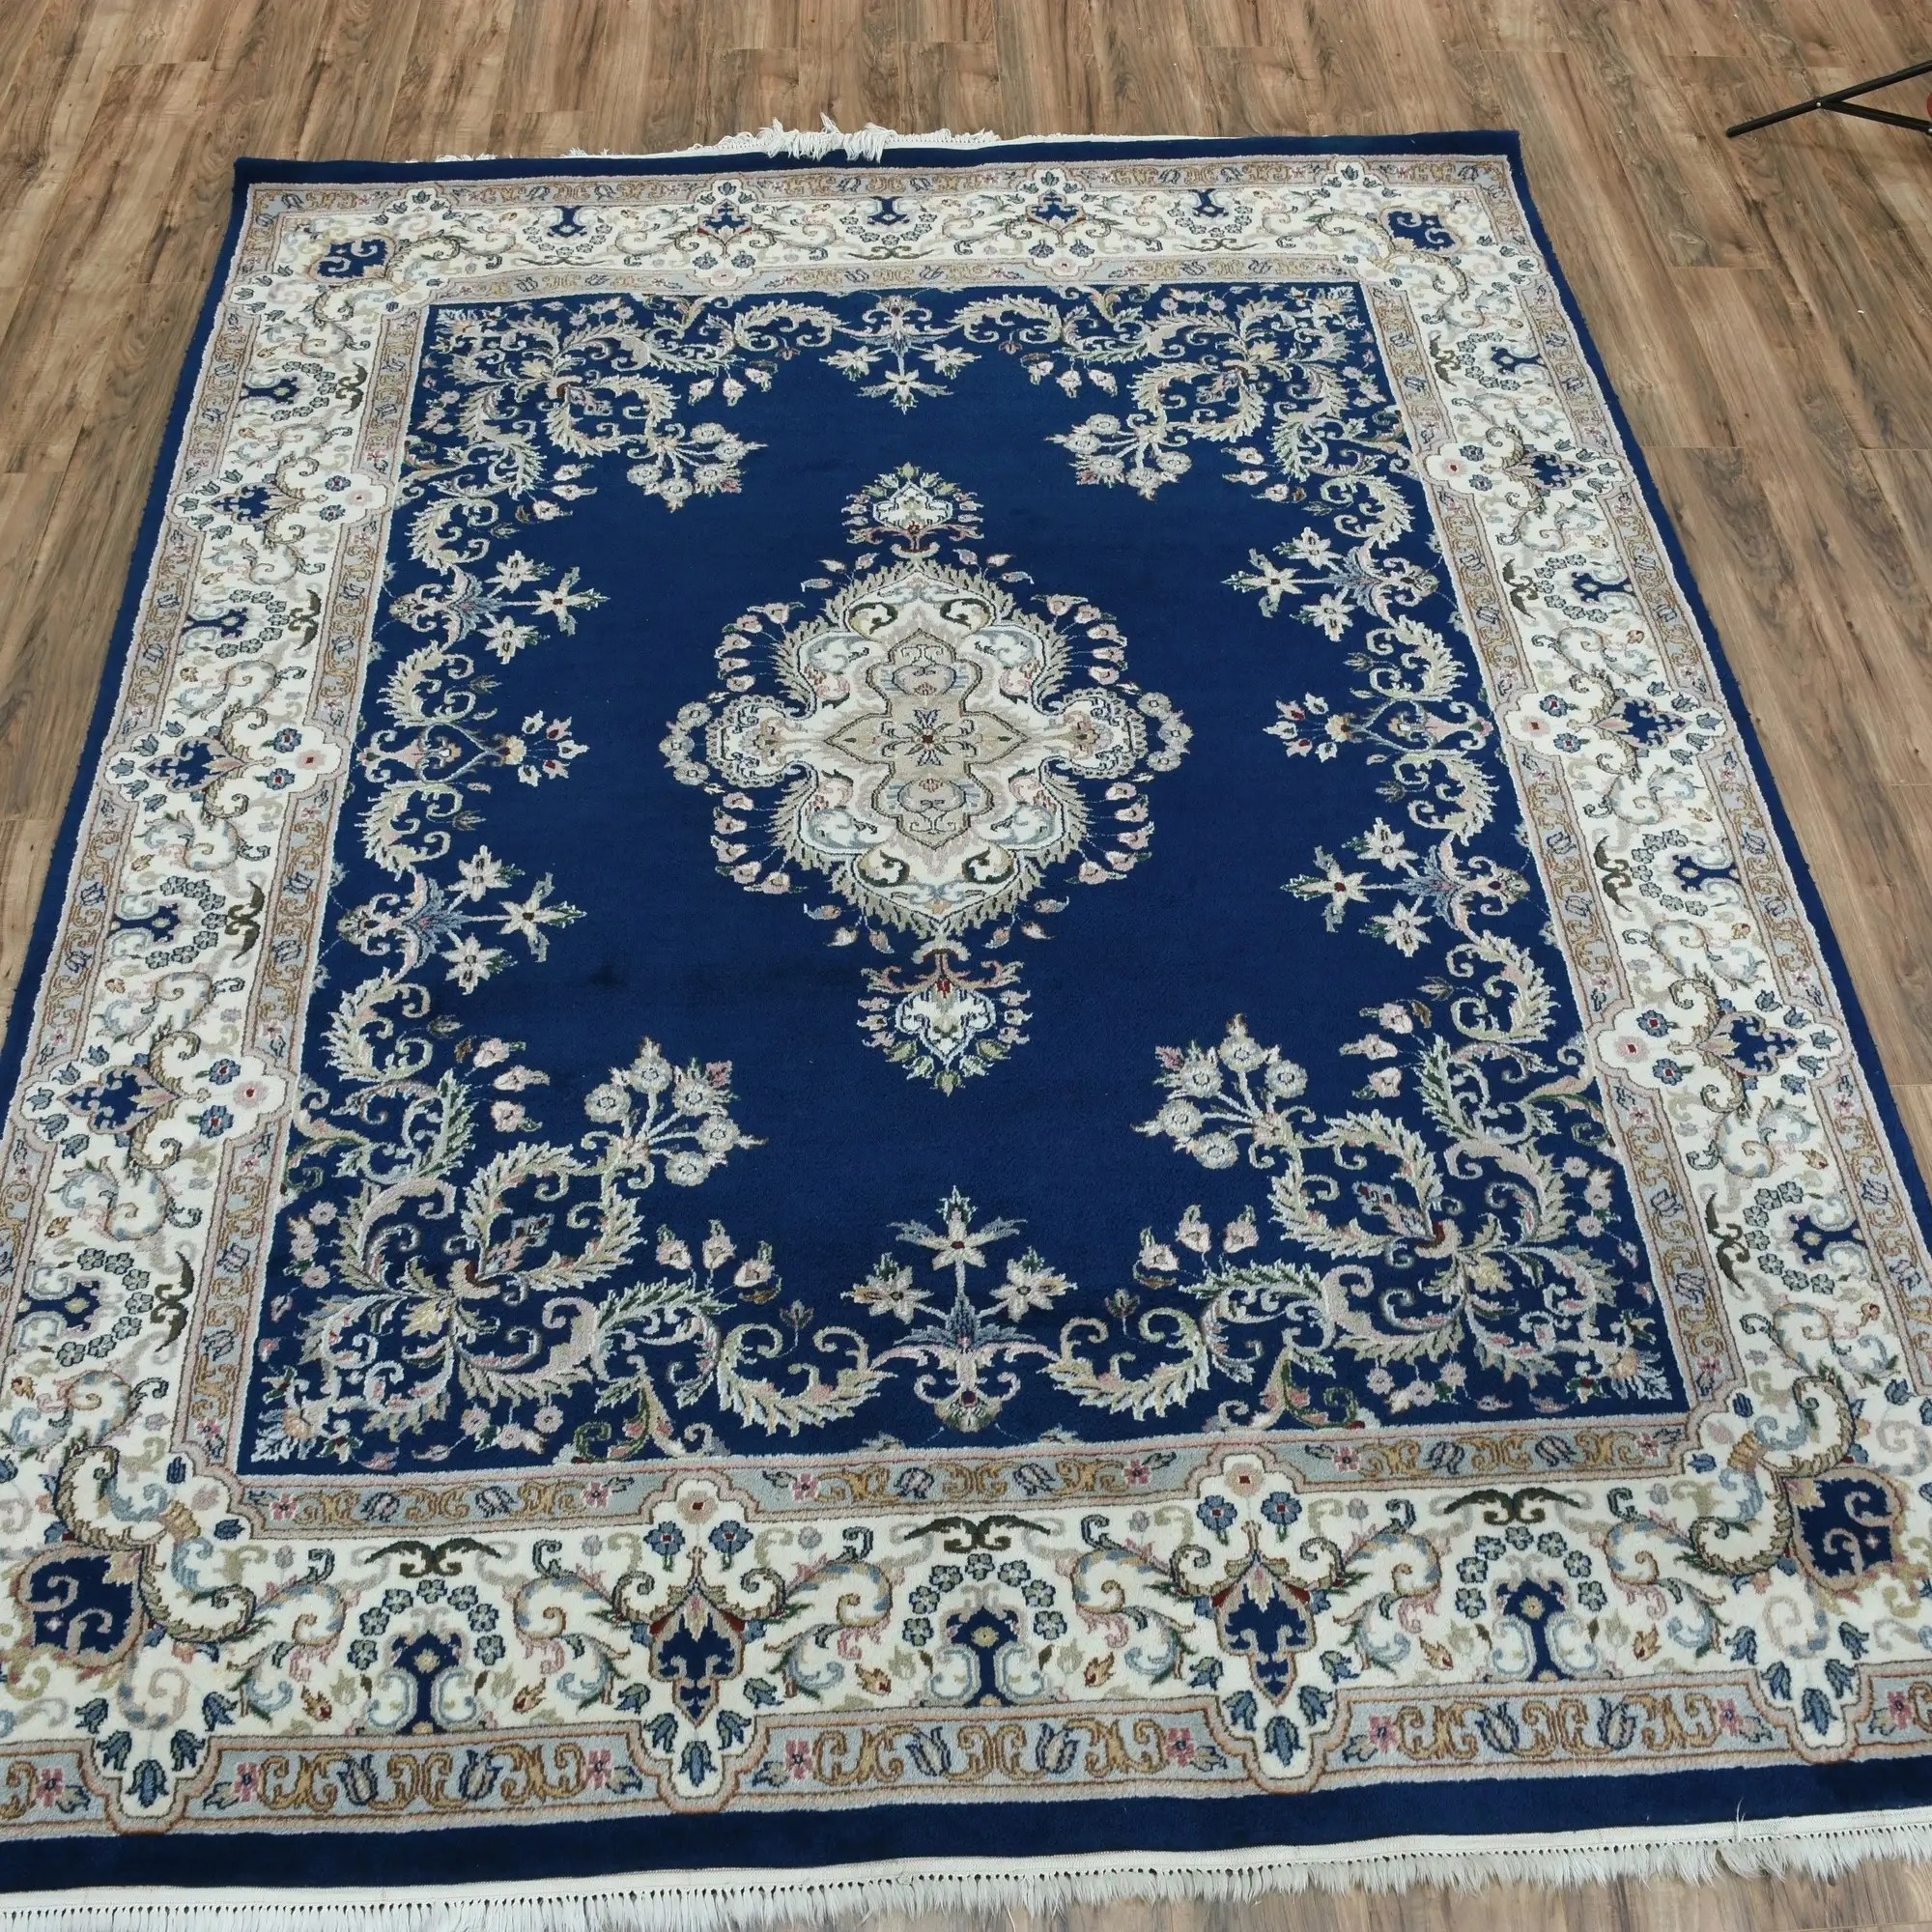 navy blue 8x10 area rug w floral